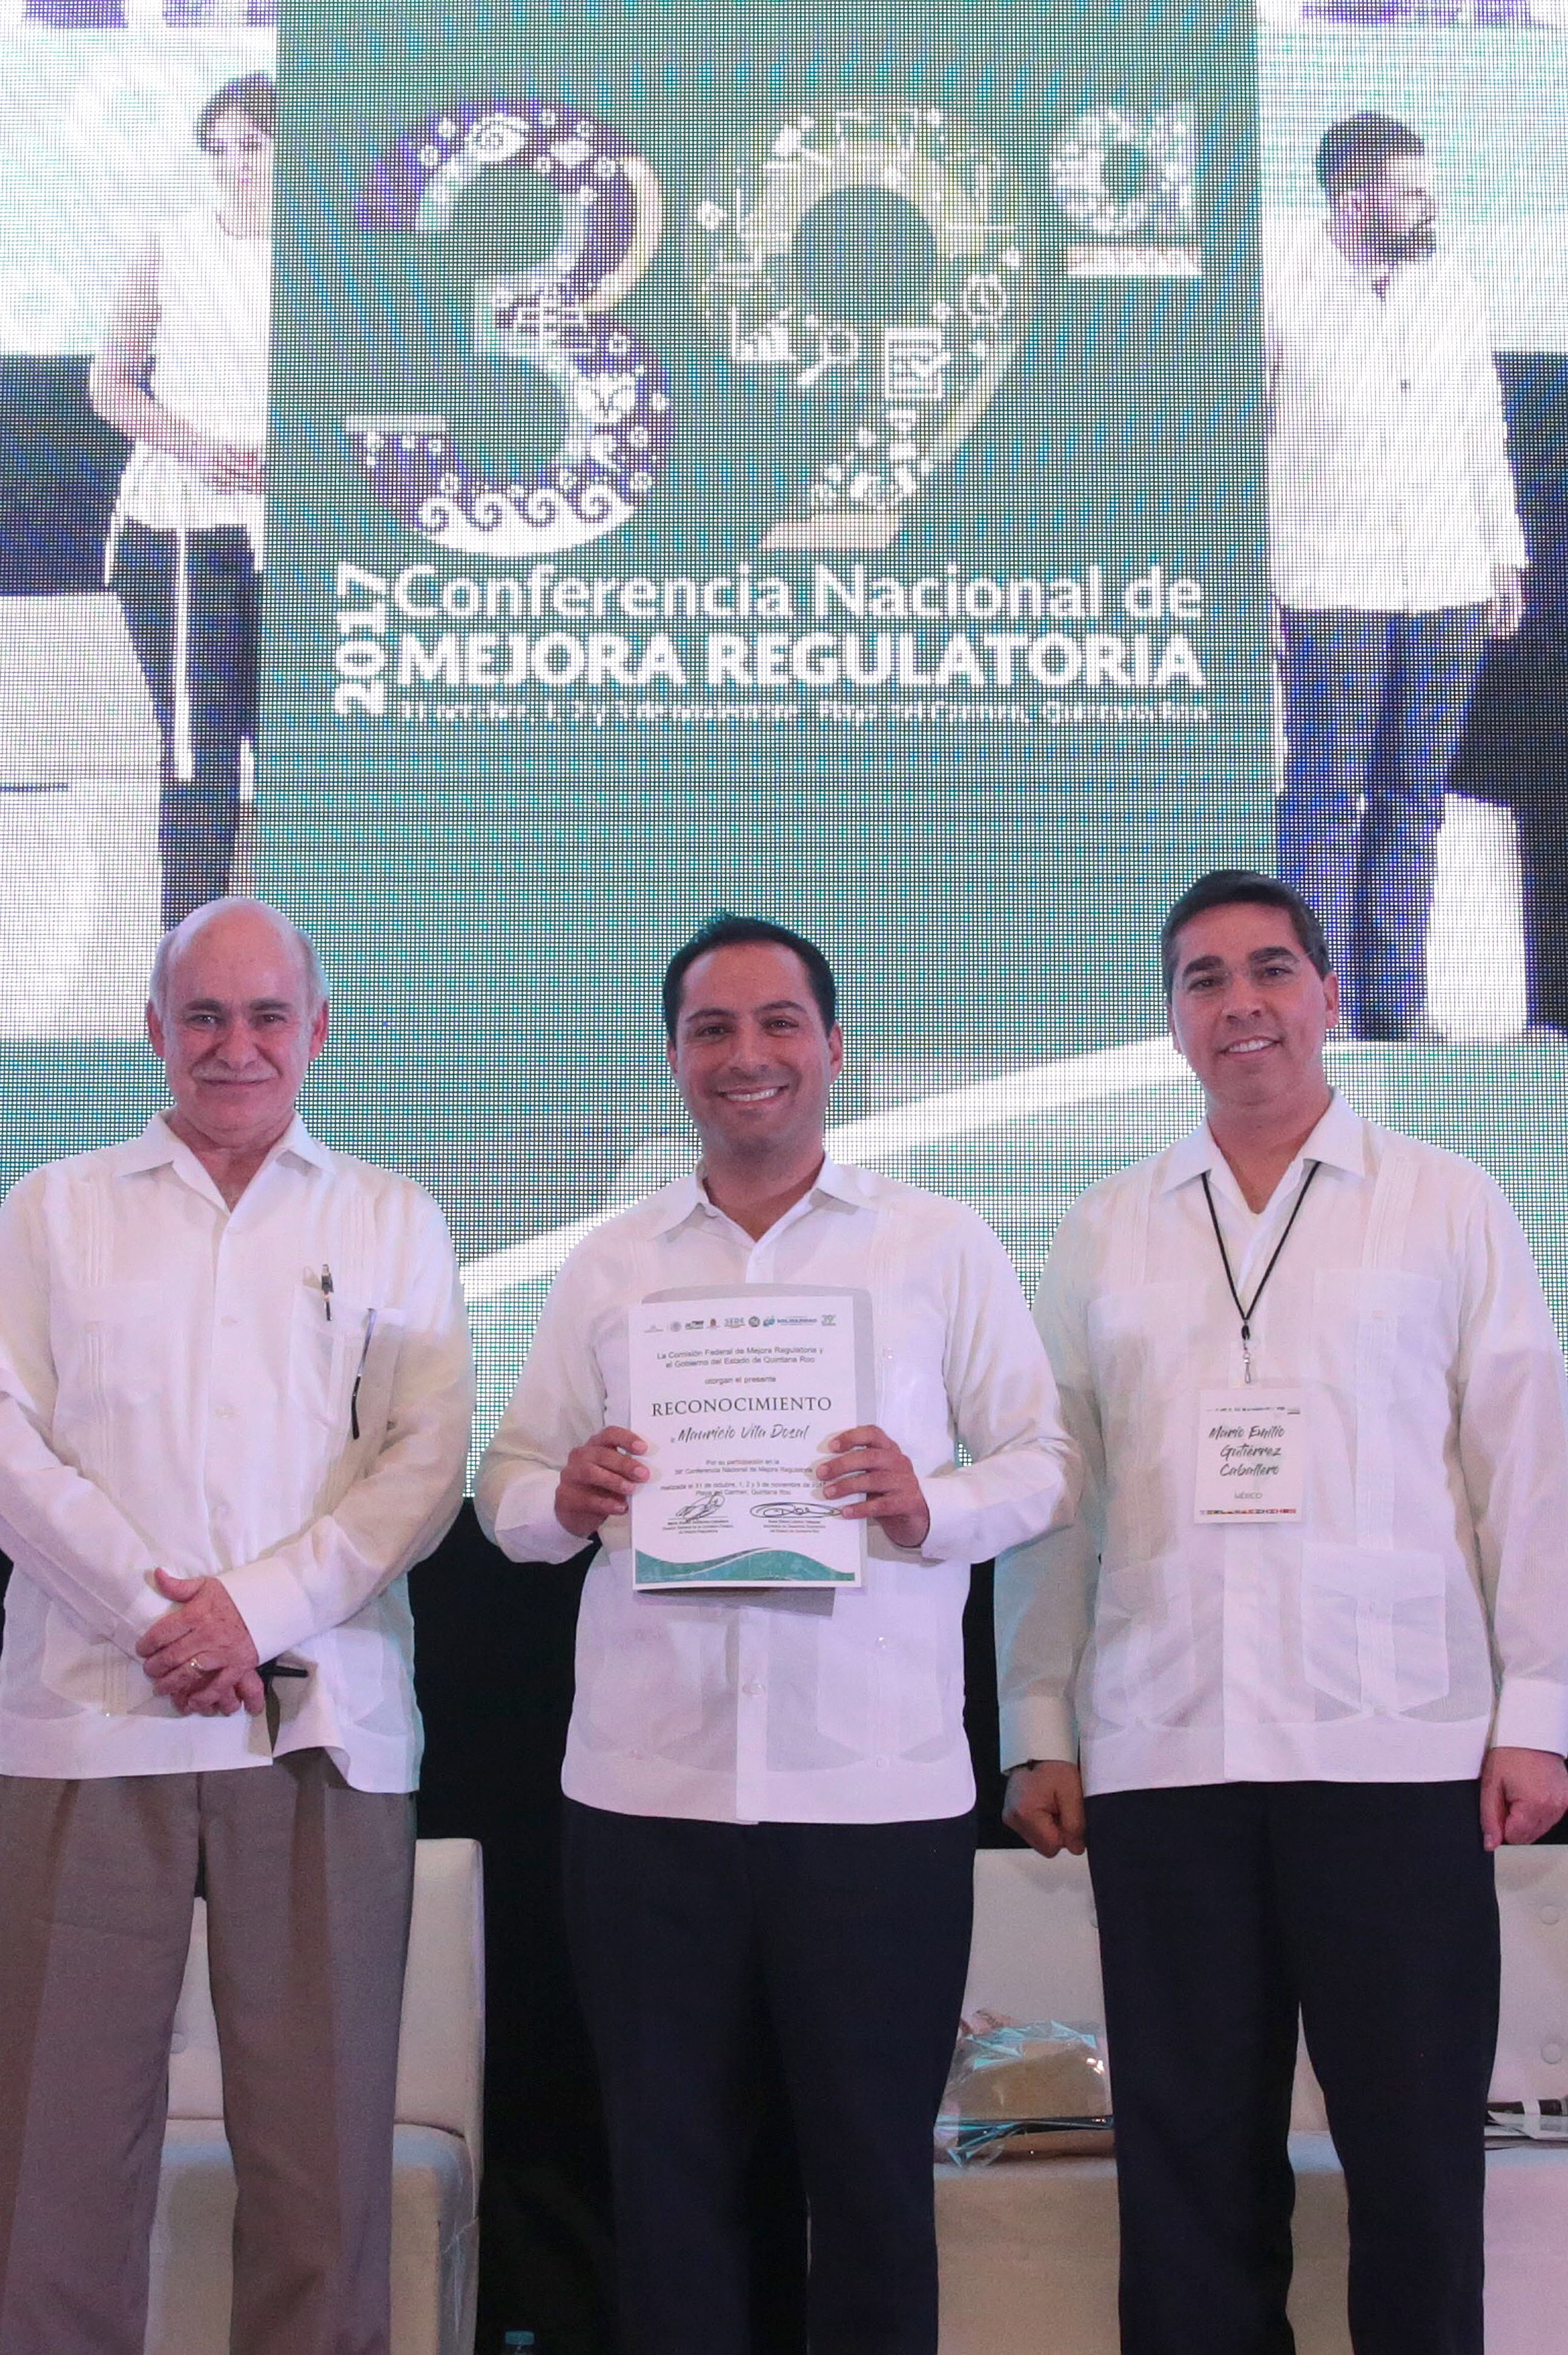 Mérida, referente de Mejora Regulatoria en Iberoamérica